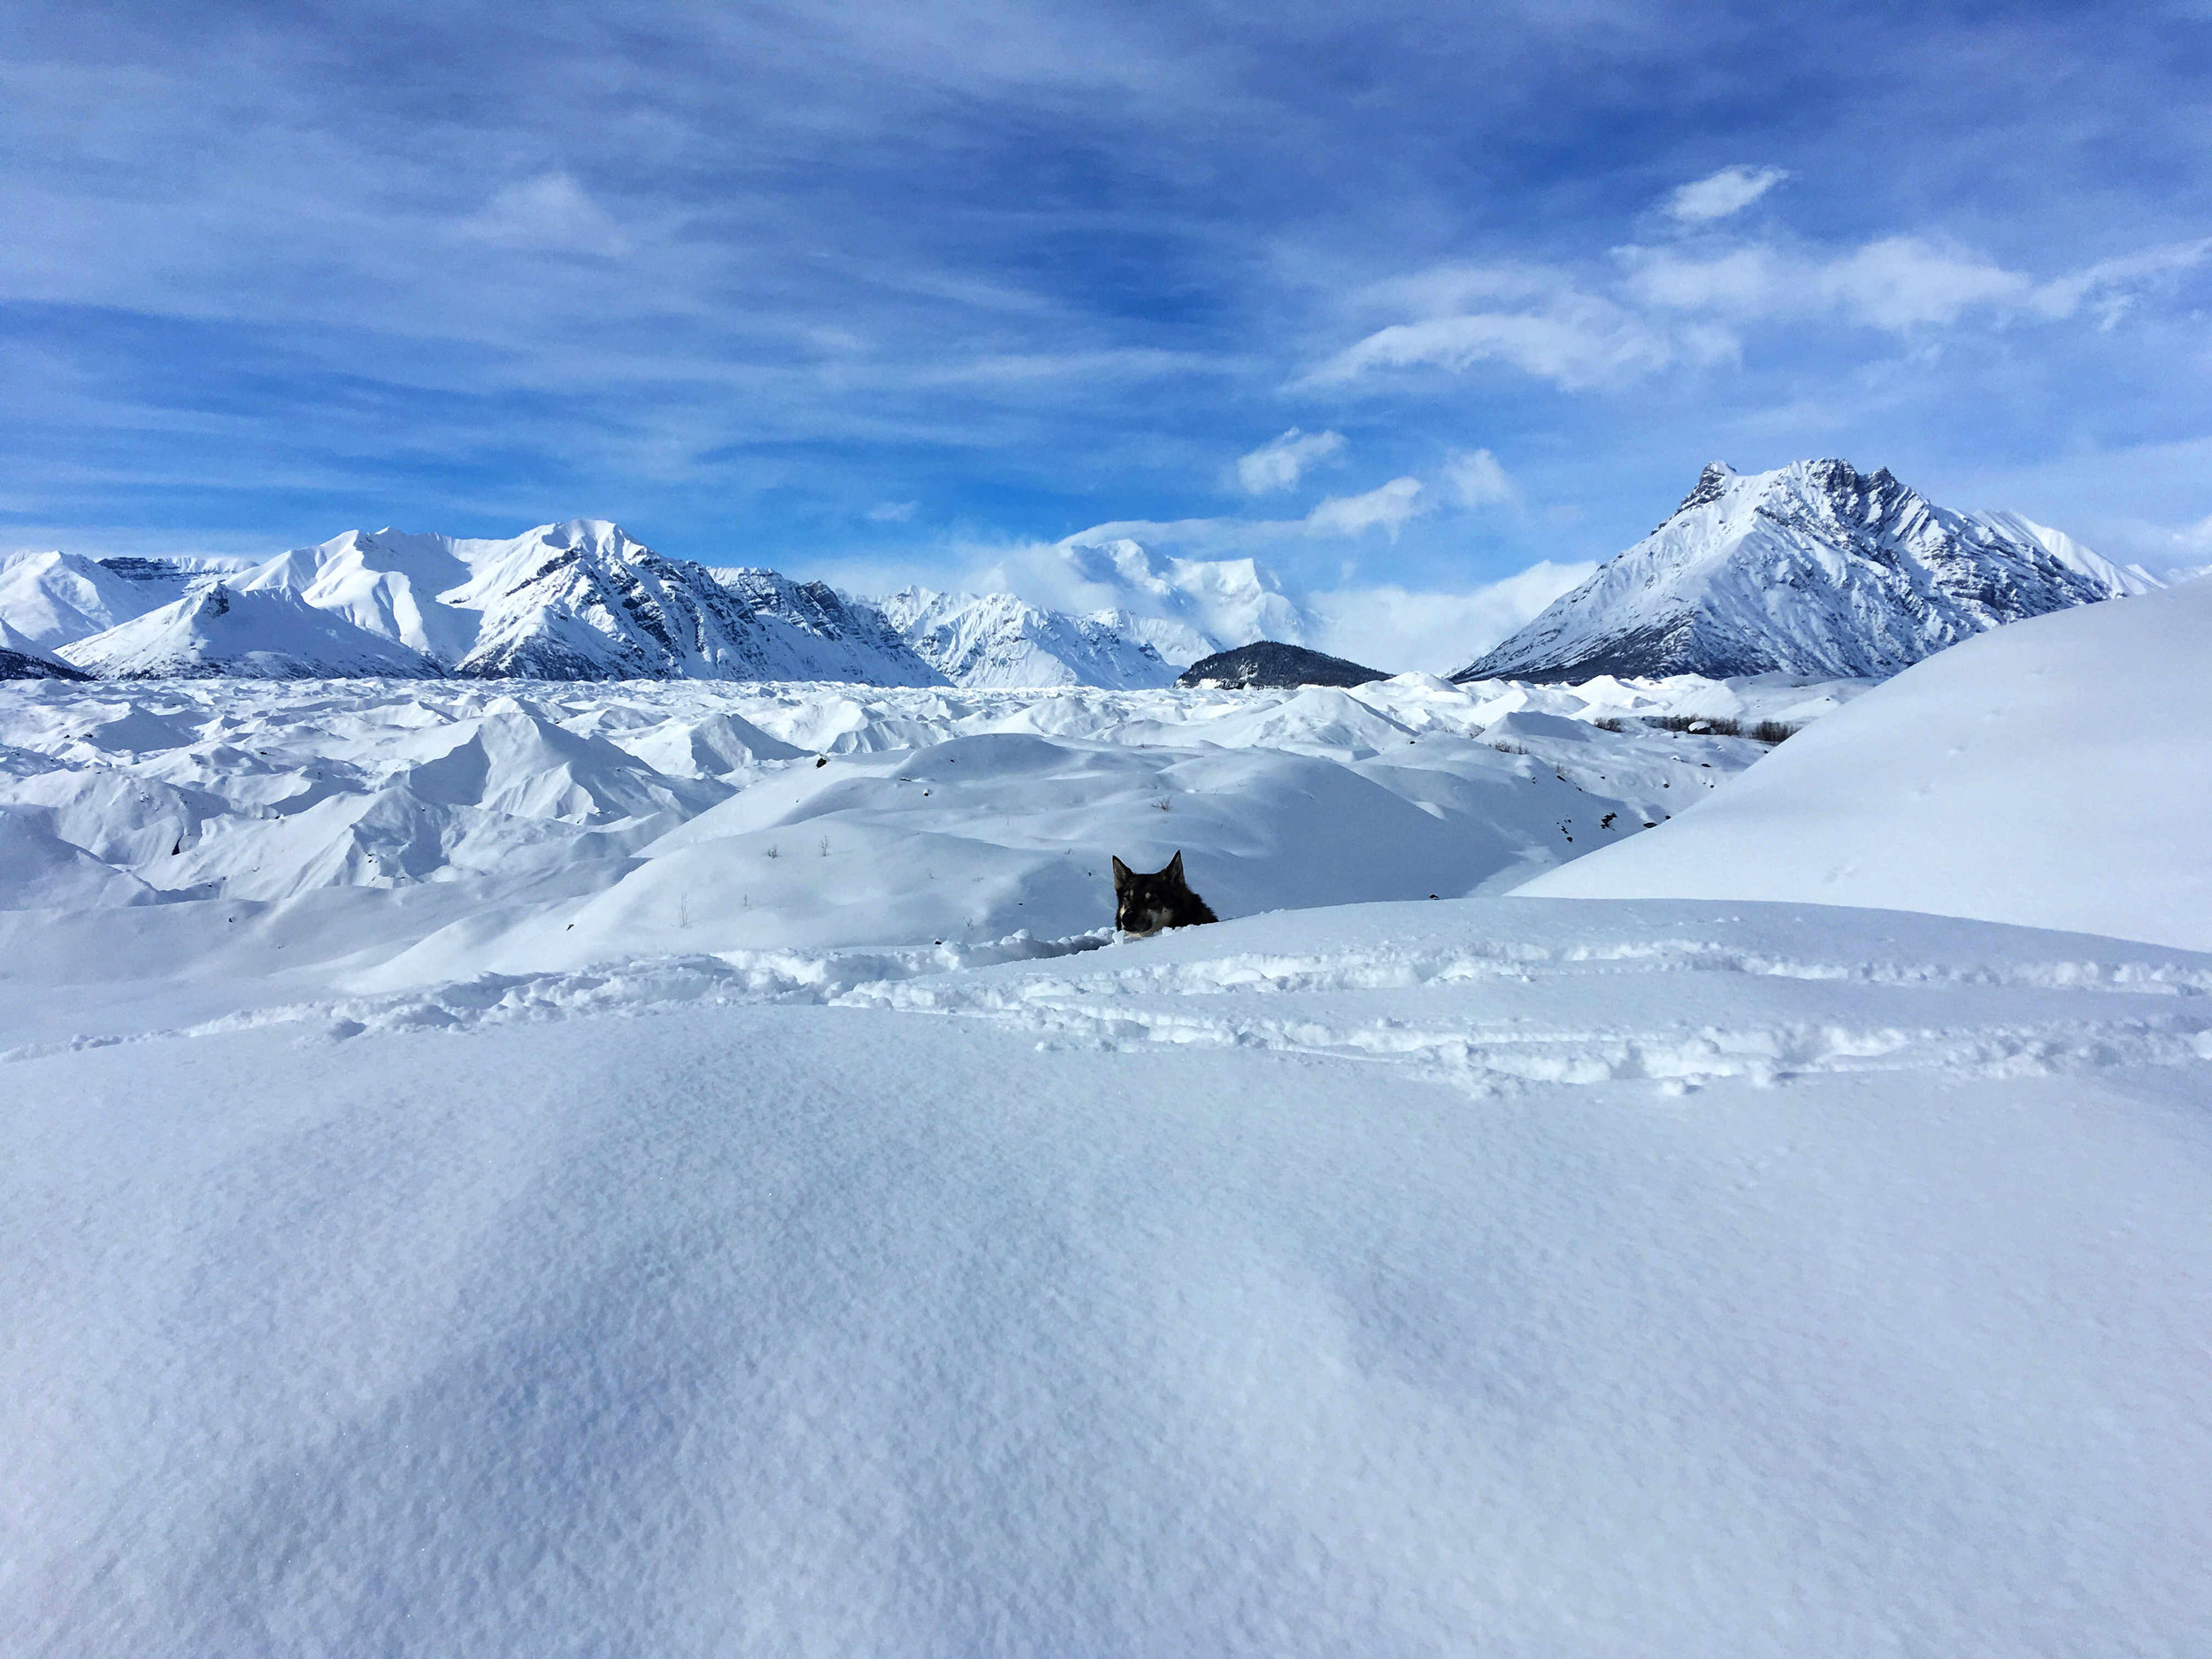 Benny, my dog, laying in the snow on the east side of the Kennicott Glacier with Mount Blackburn and Donoho Peak in the background.